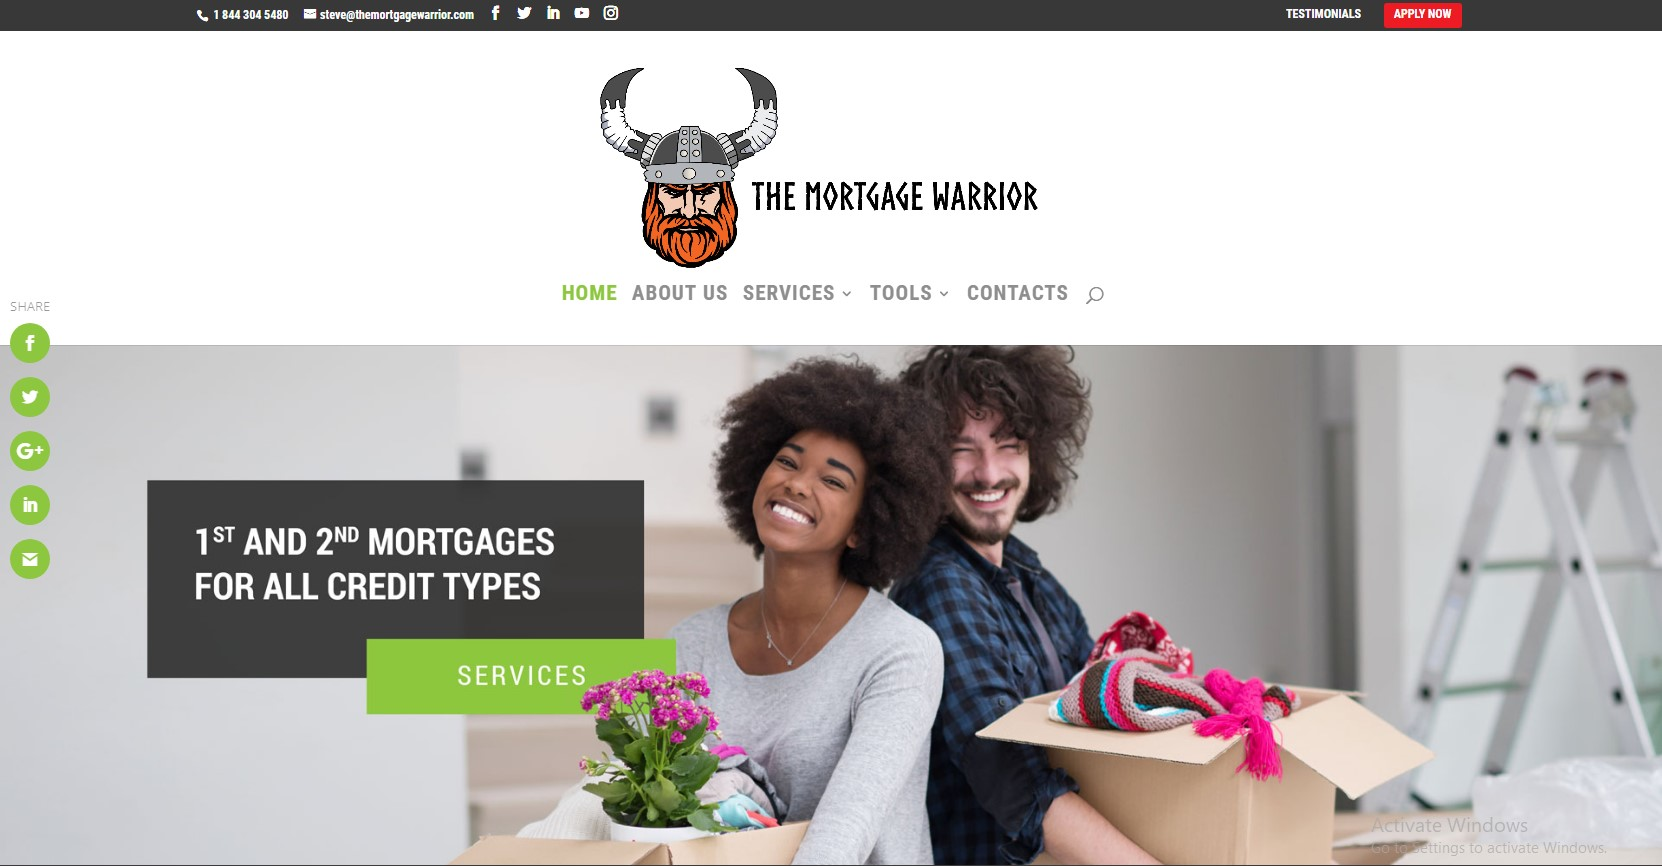 Mortgage Warrior